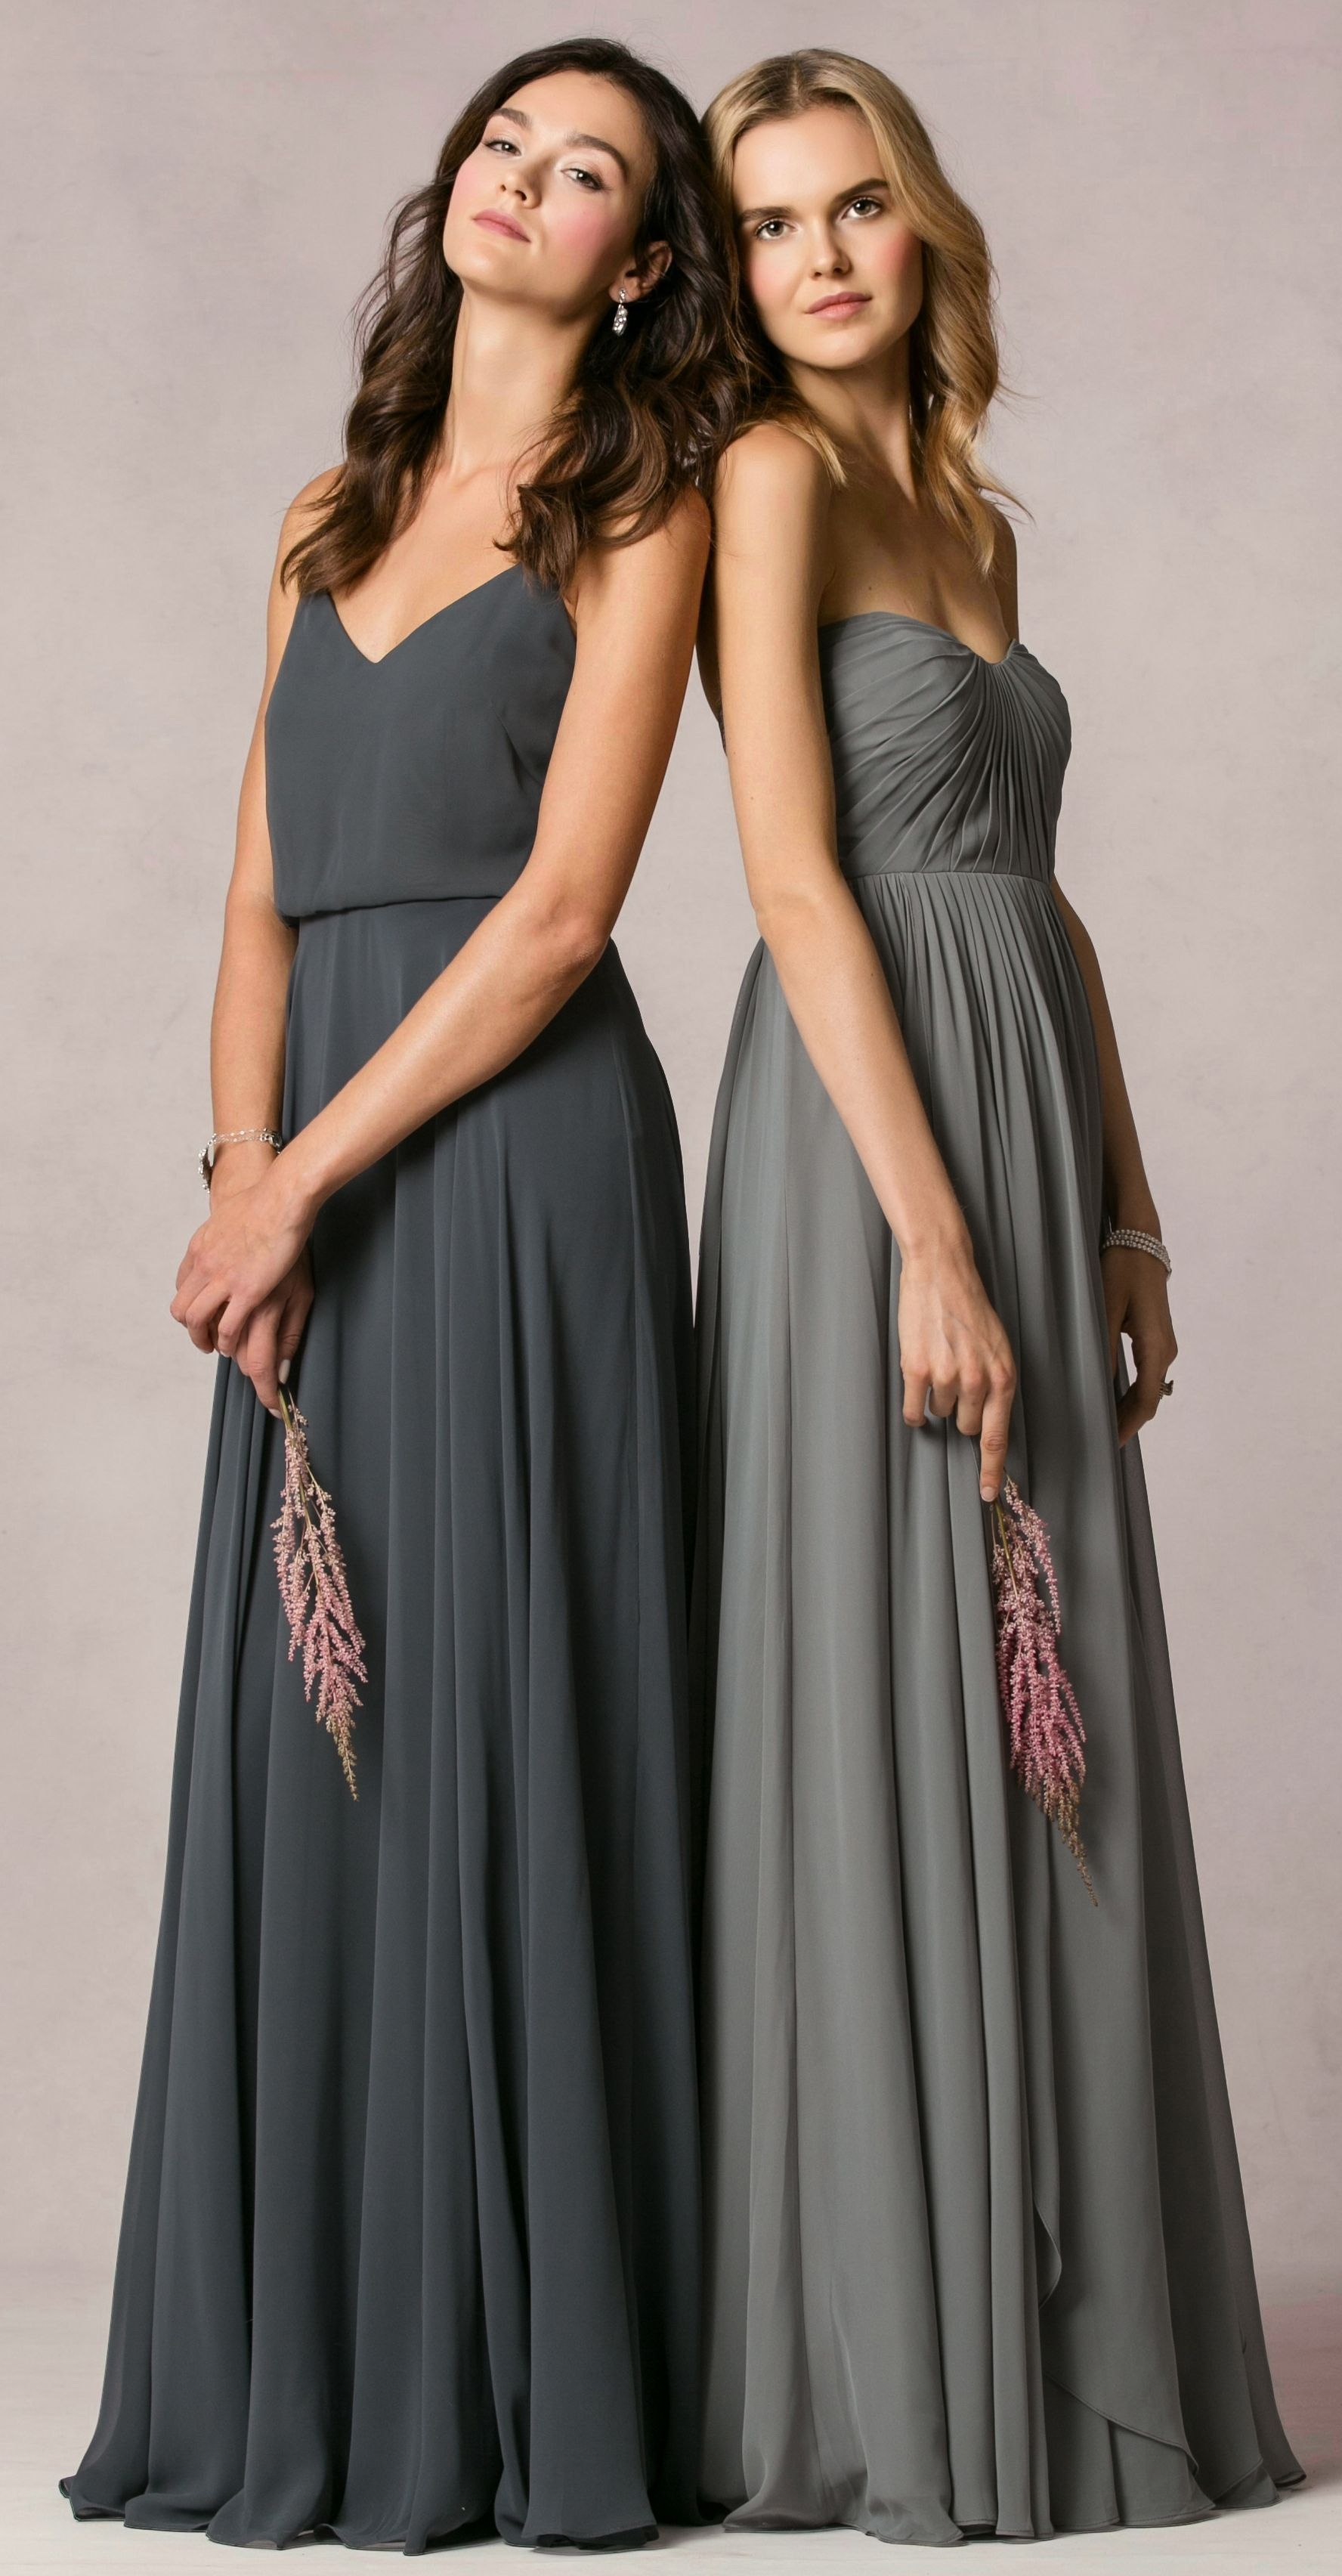 Inesse mira by jenny yoo in luxe chiffon h ms inesse mira by jenny yoo in luxe chiffon bridesmaid ombrellifo Gallery